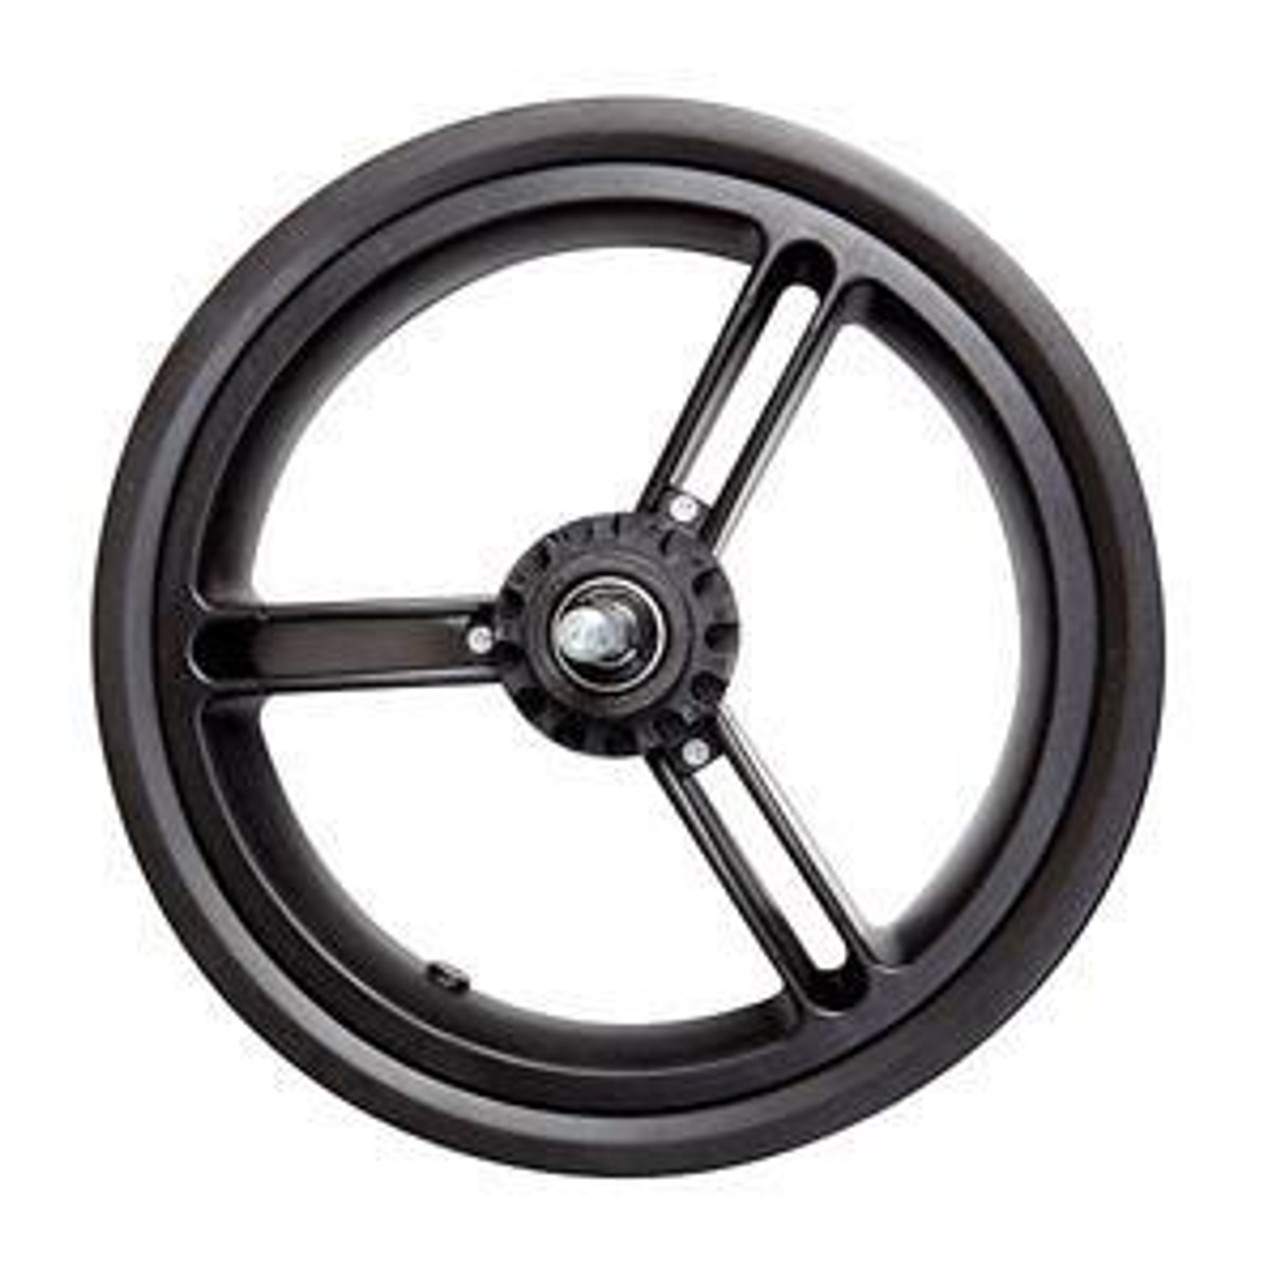 Phil & Teds Promenade Rear Wheel at Baby Barn Discounts Replacement rear wheel to suit the Phil & Teds/ Mountain Buggy Promenade buggy (including the axle).